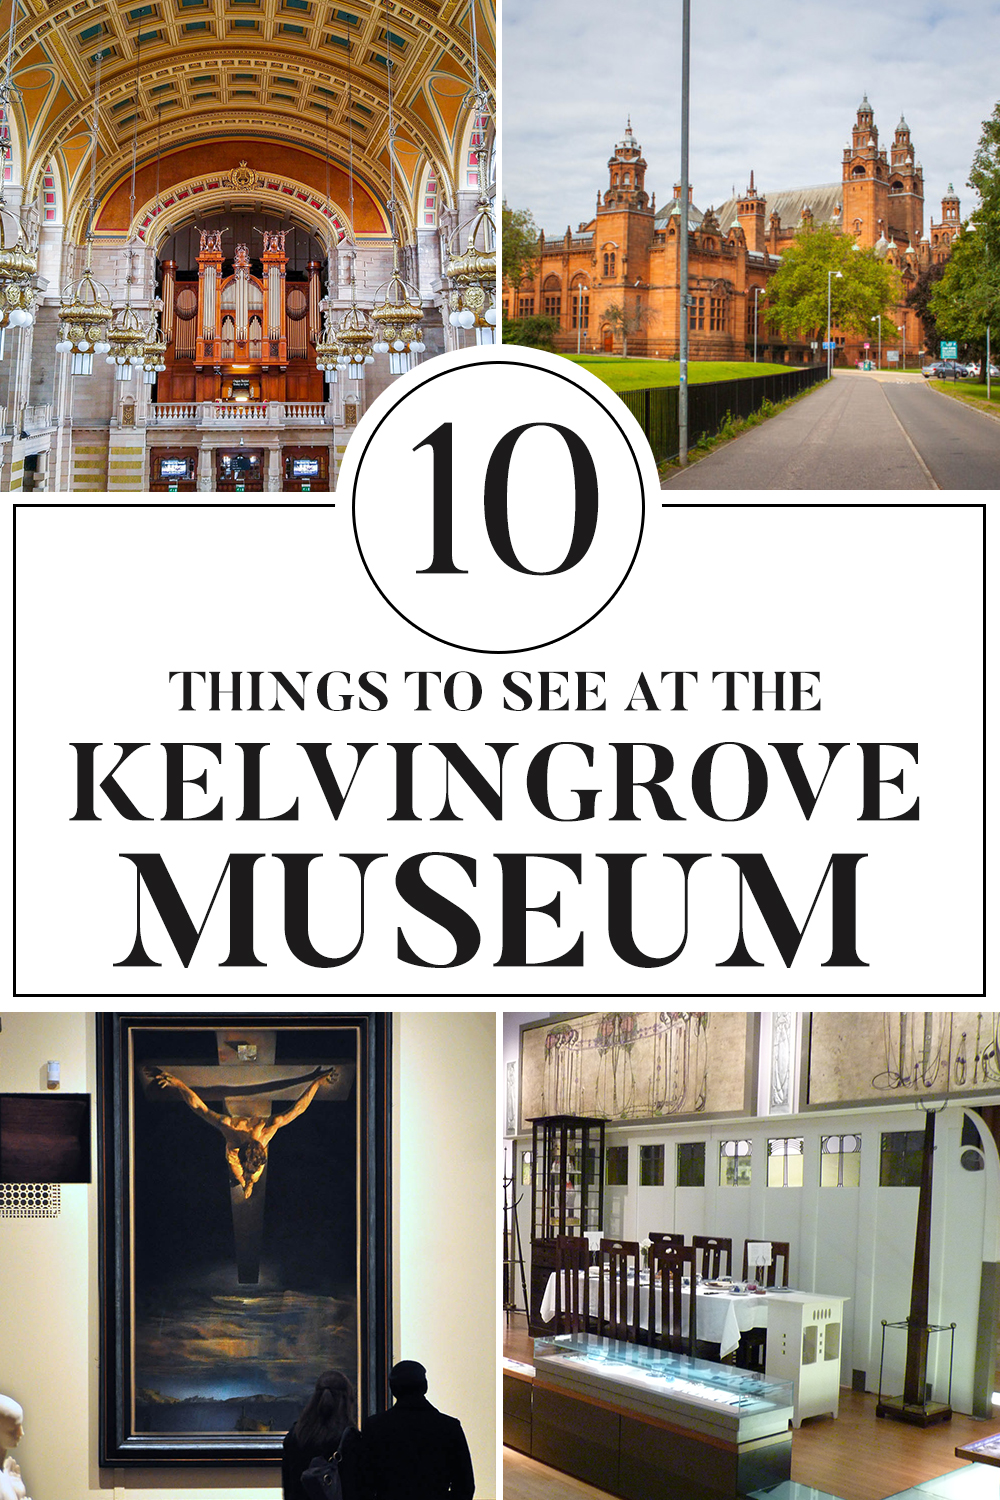 10 Things to See and Do at the Kelvingrove Museum